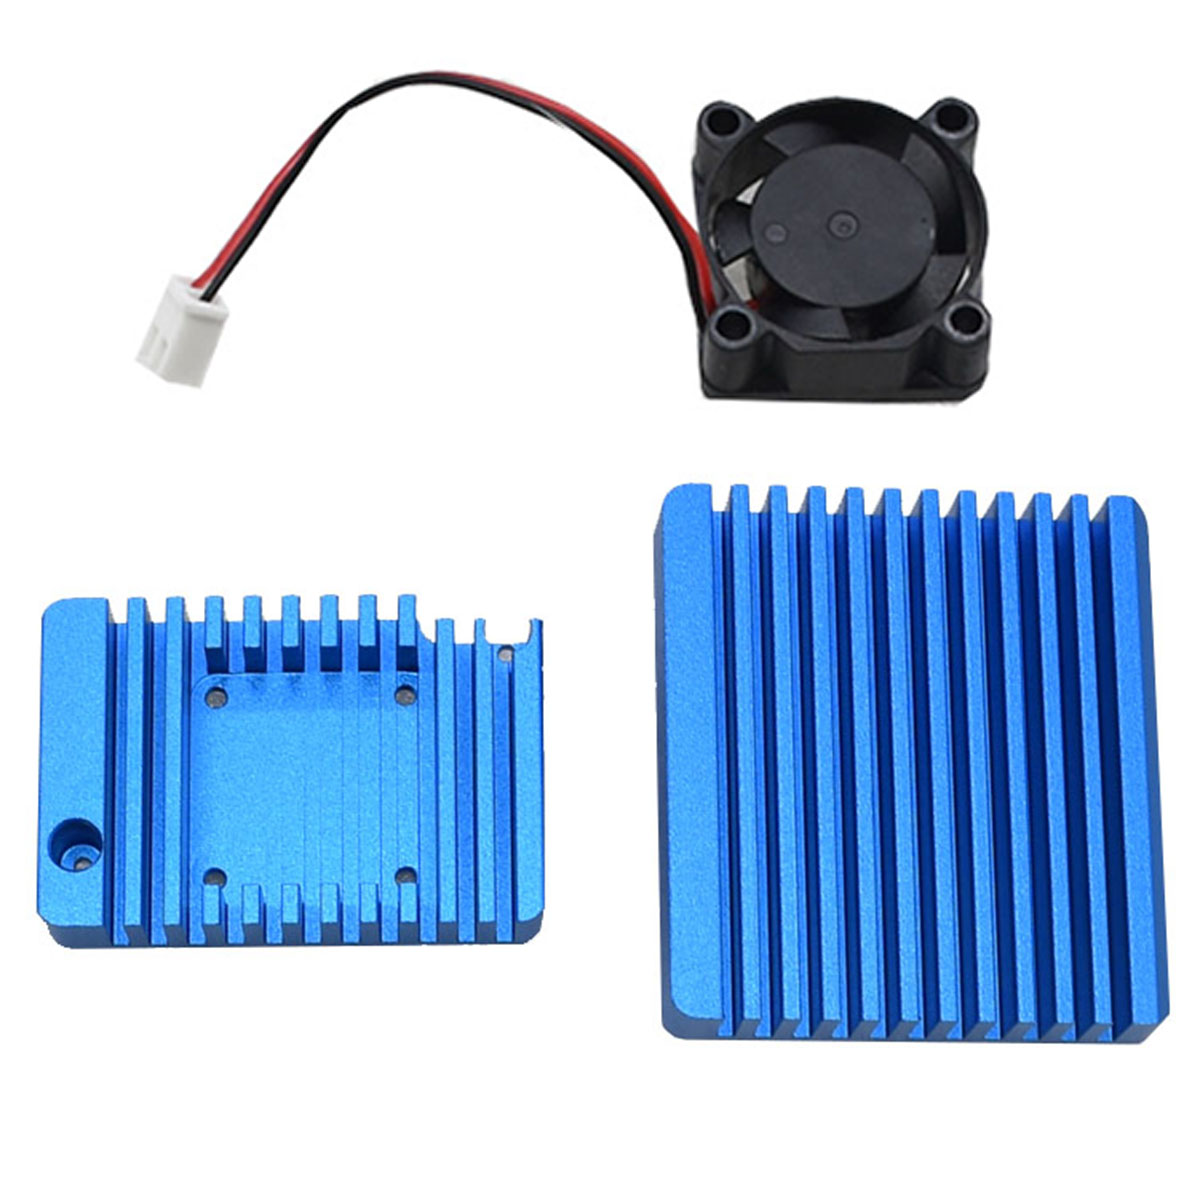 Brand New Durable High Quality Aluminum Alloy Shell 1 Set Of Case With Fan Good Heat Disppation System Fit For NanoPi R2S